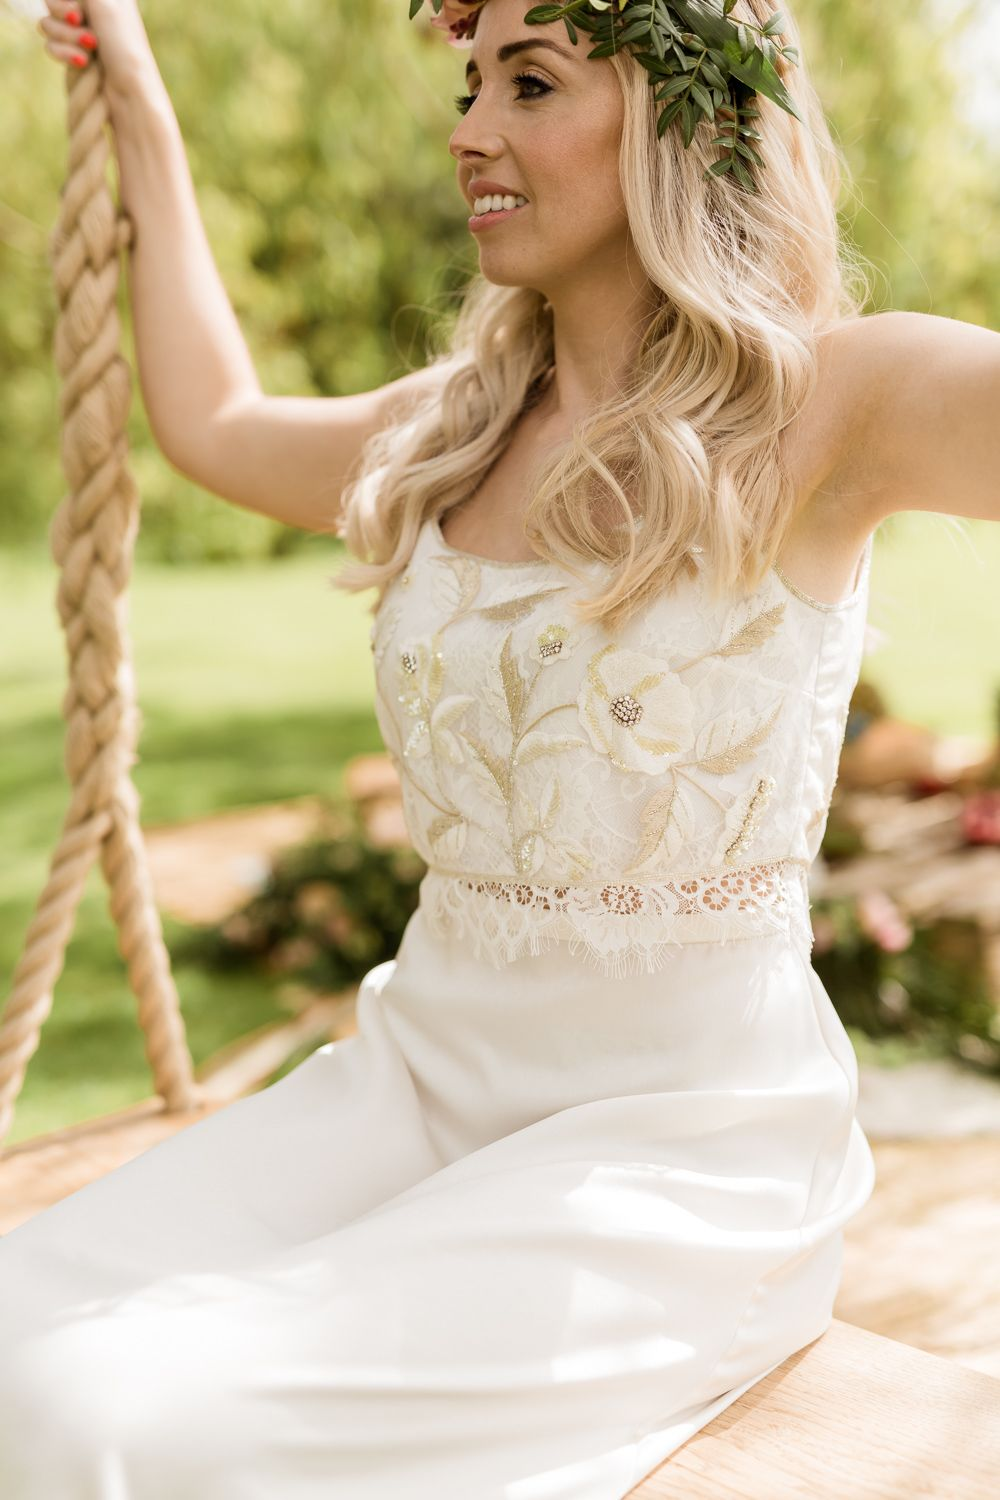 Tropical boho countryside wedding ideas wedding dresses fashion